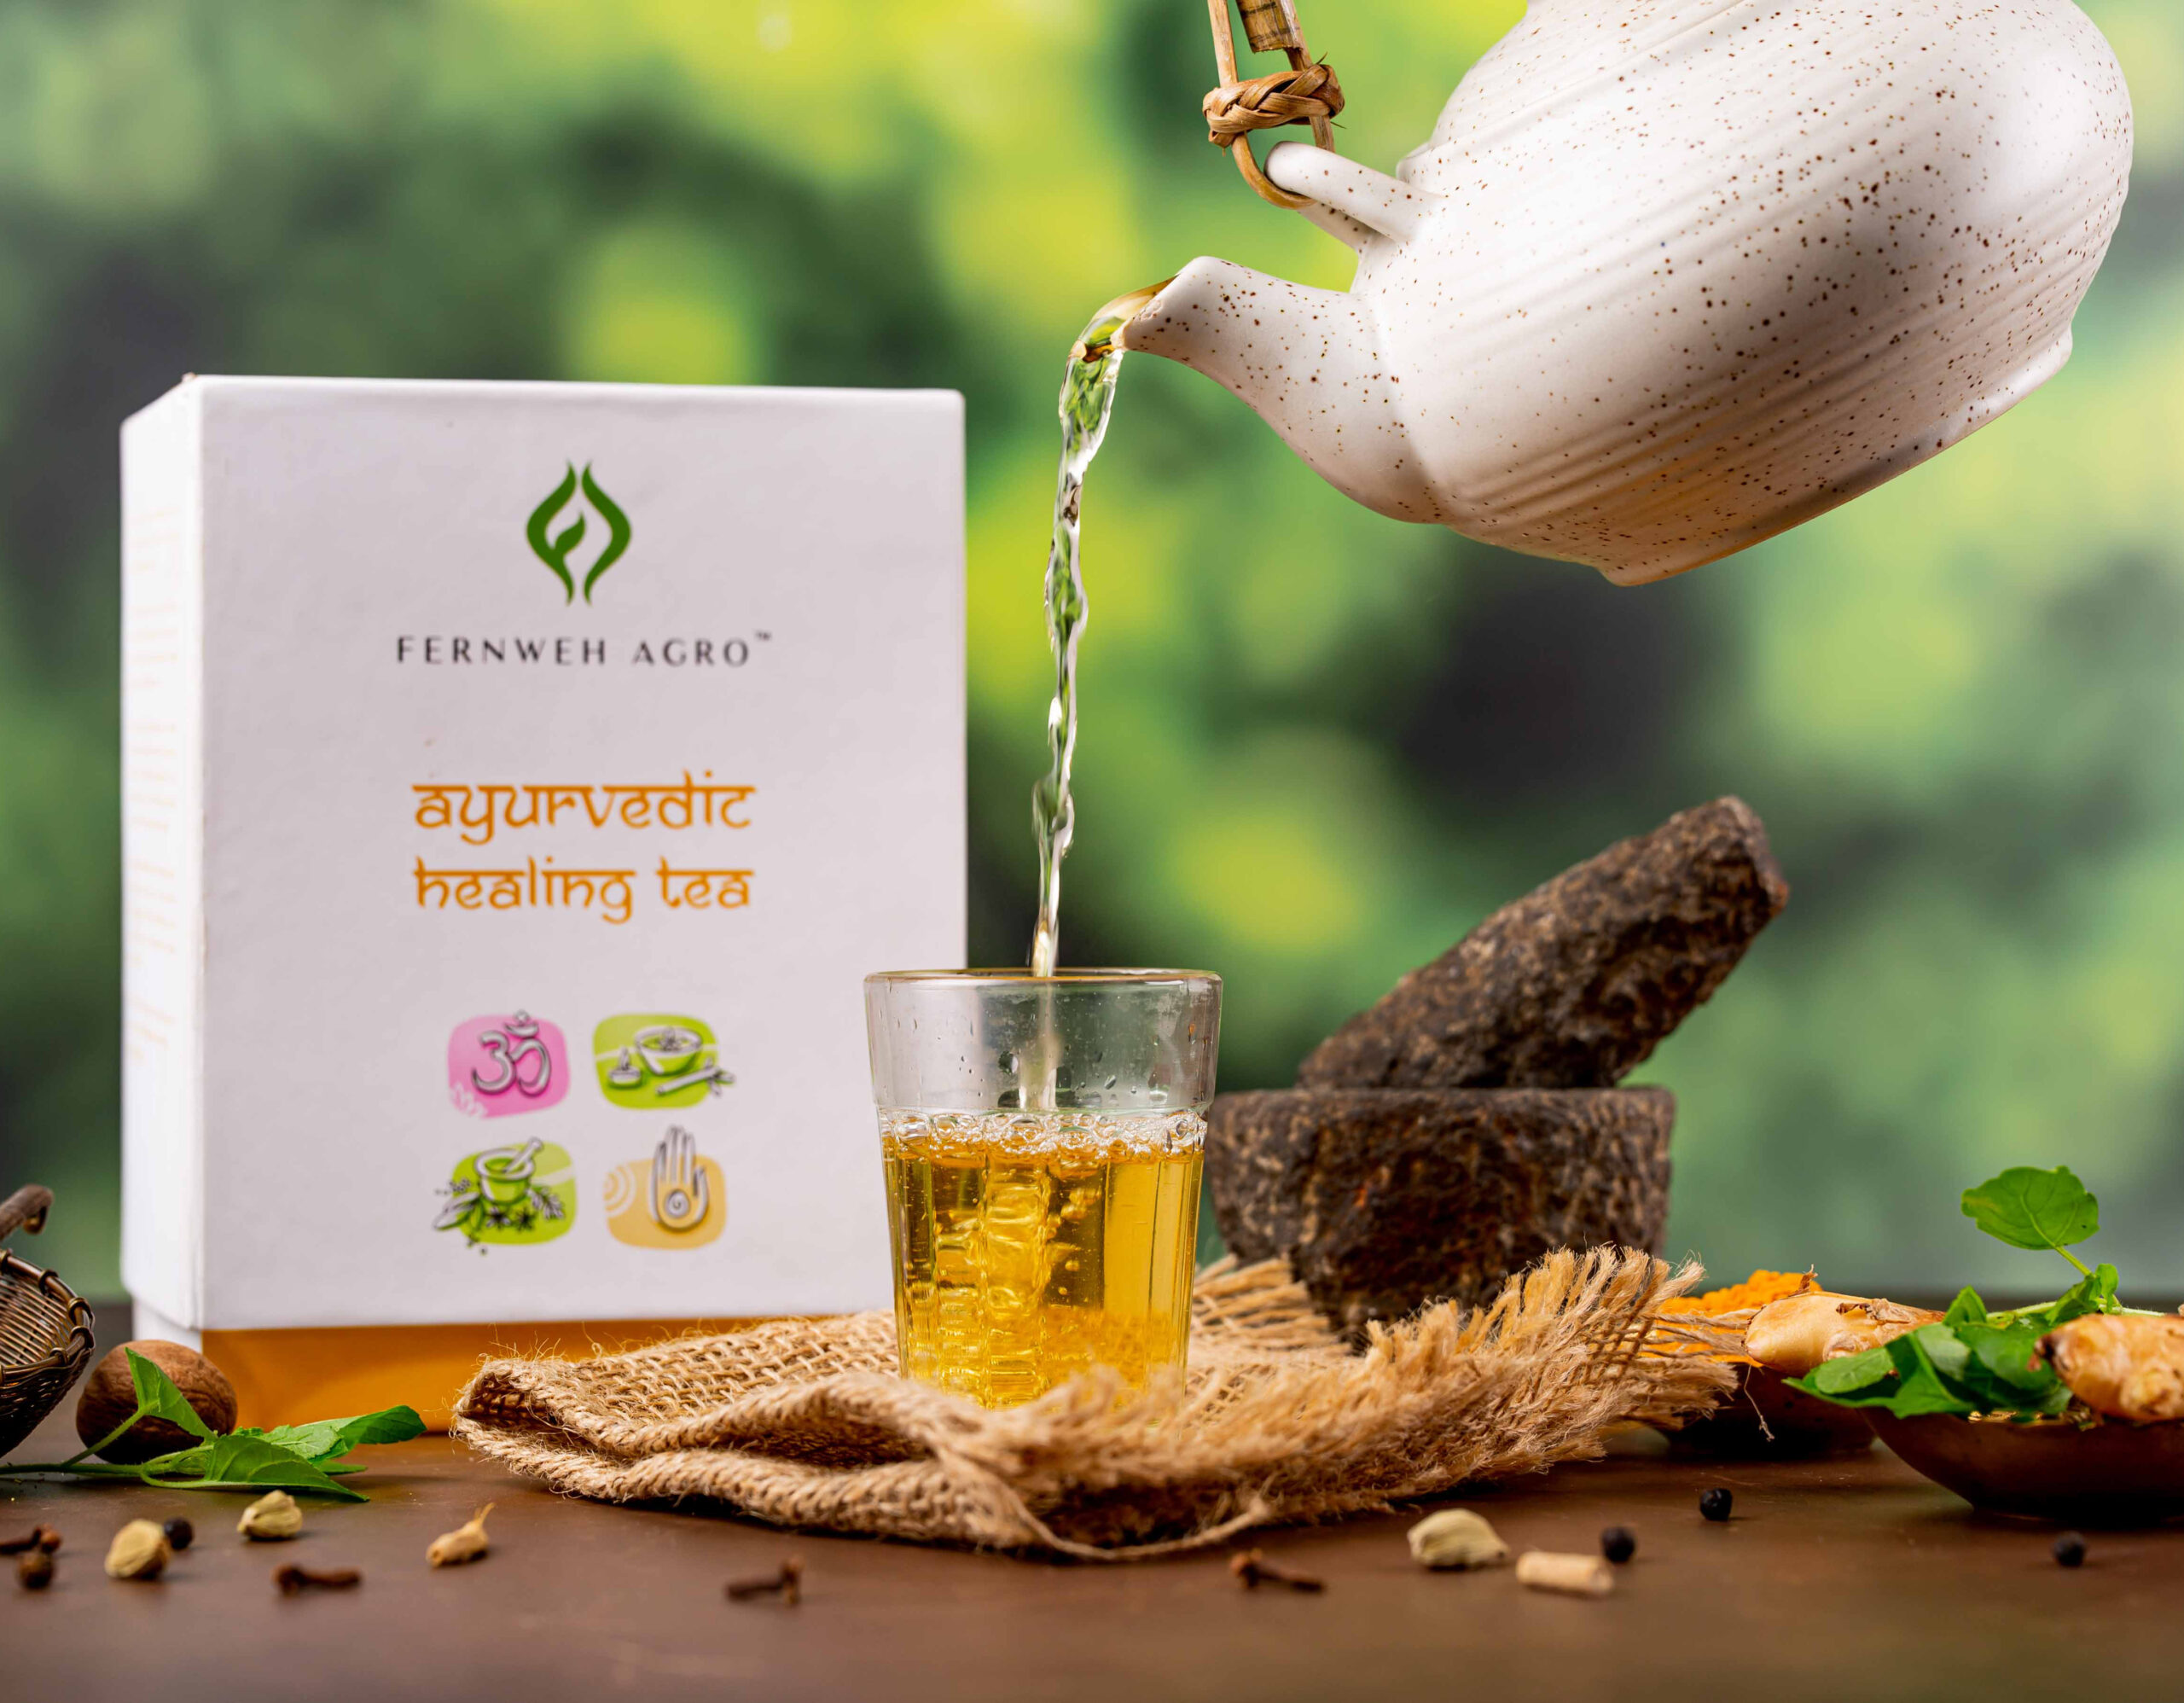 Fernweh Agro Ayurvedic Healing Green Tea exhibits the health-benefit aesthetics of Ayurveda culture. The herbal infusion surrounding the tea includes turmeric, black pepper, ashwagandha, rooibos, clove, ginger, tulsi, liquorice, and organic green tea. It is a remedial beverage that profiles piquant but soothing notes, spicy-citrusy aroma with mild pungent undertones, and radiant Tuscany visuals. This tea heightens the immunity defence to alleviate overall health wellness.